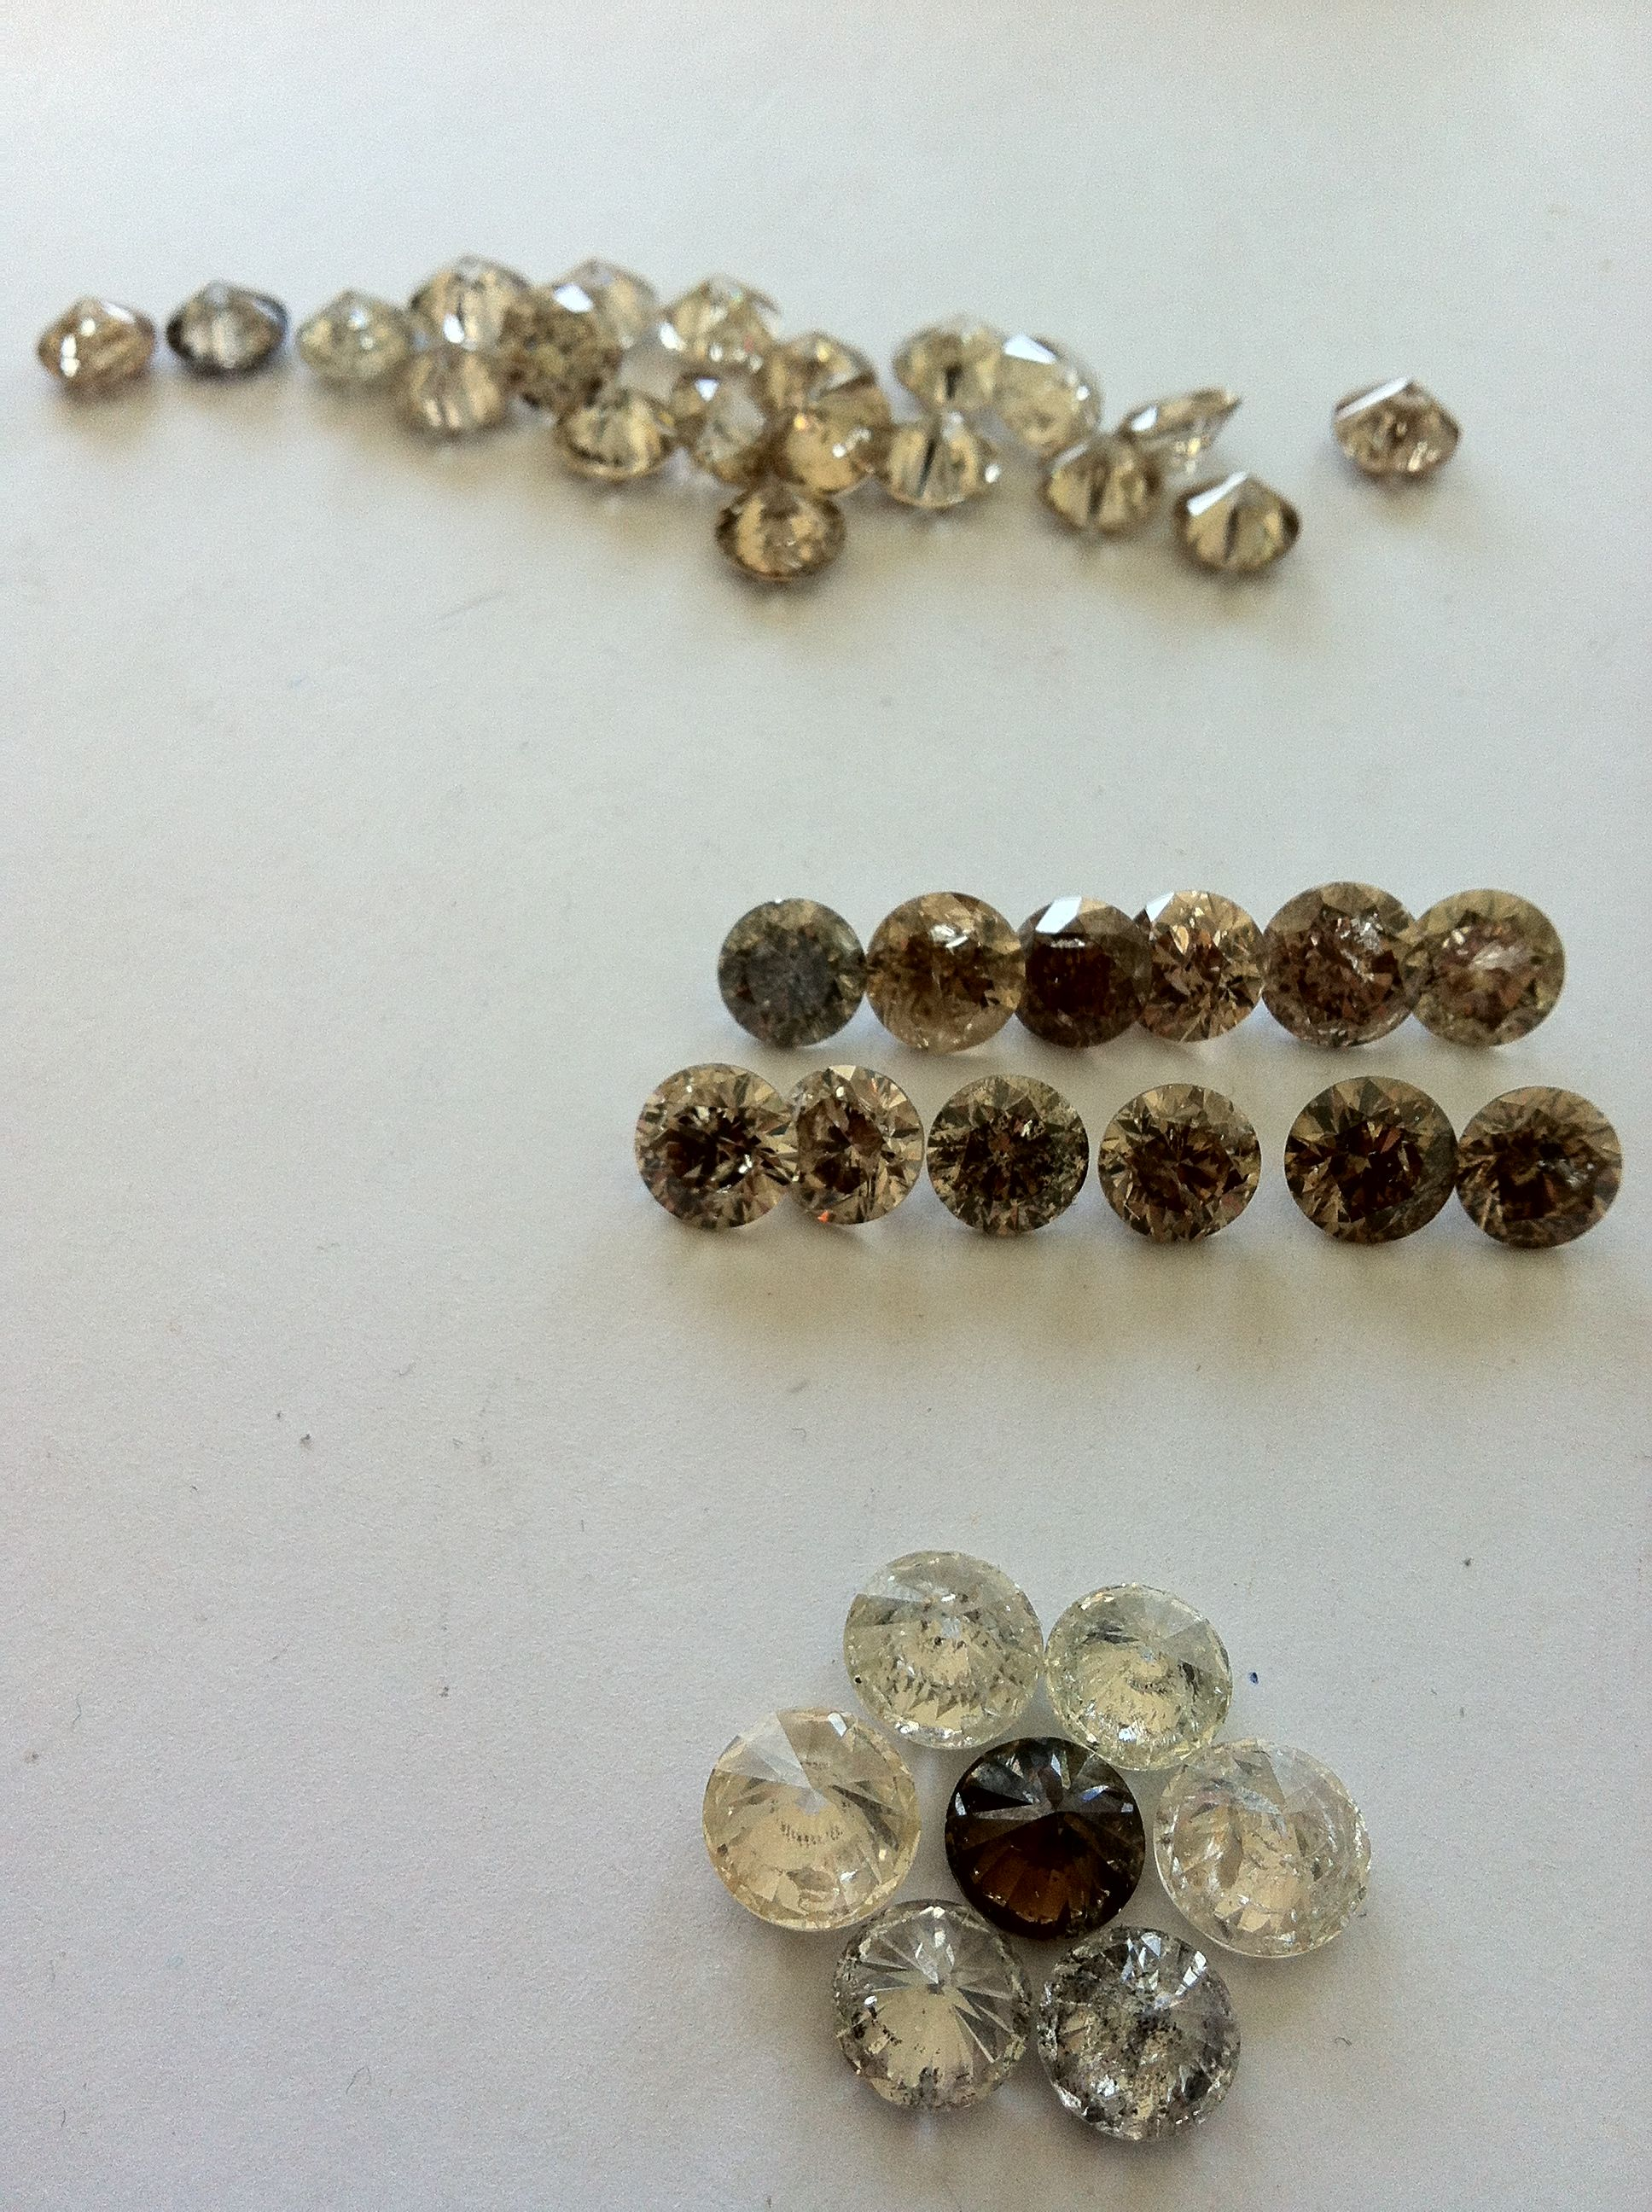 which type of Diamond Jewellery do you wish to make from these ...